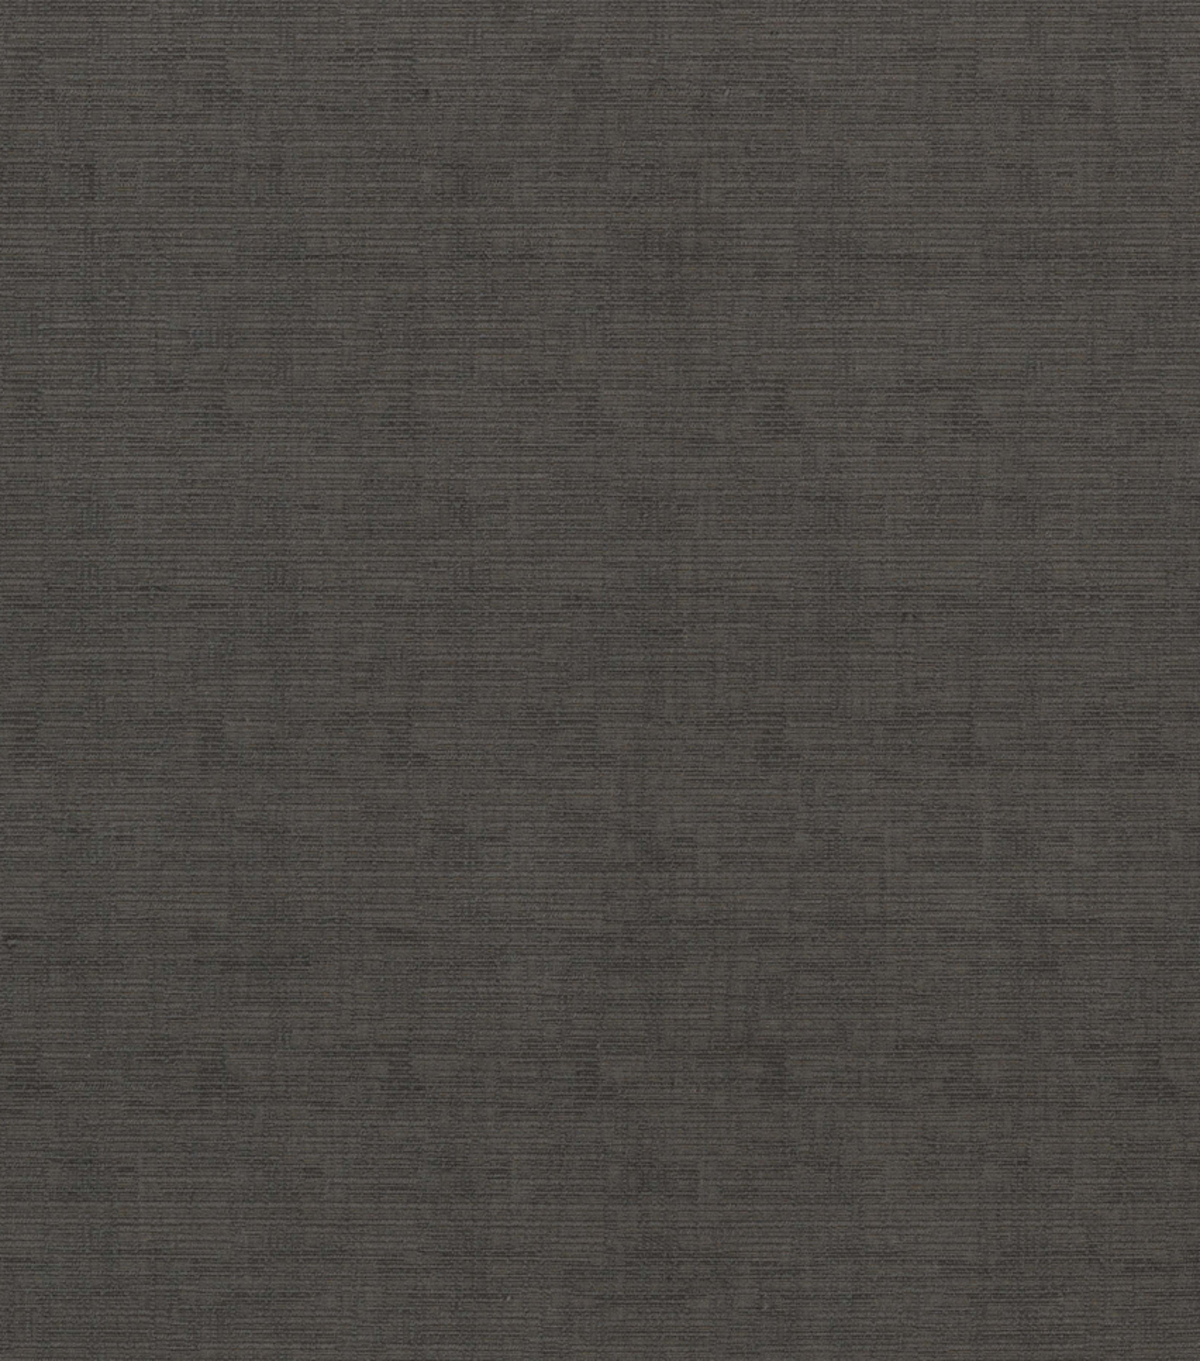 Crypton Upholstery Decor Fabric 54\u0022-Aspen-Charcoal